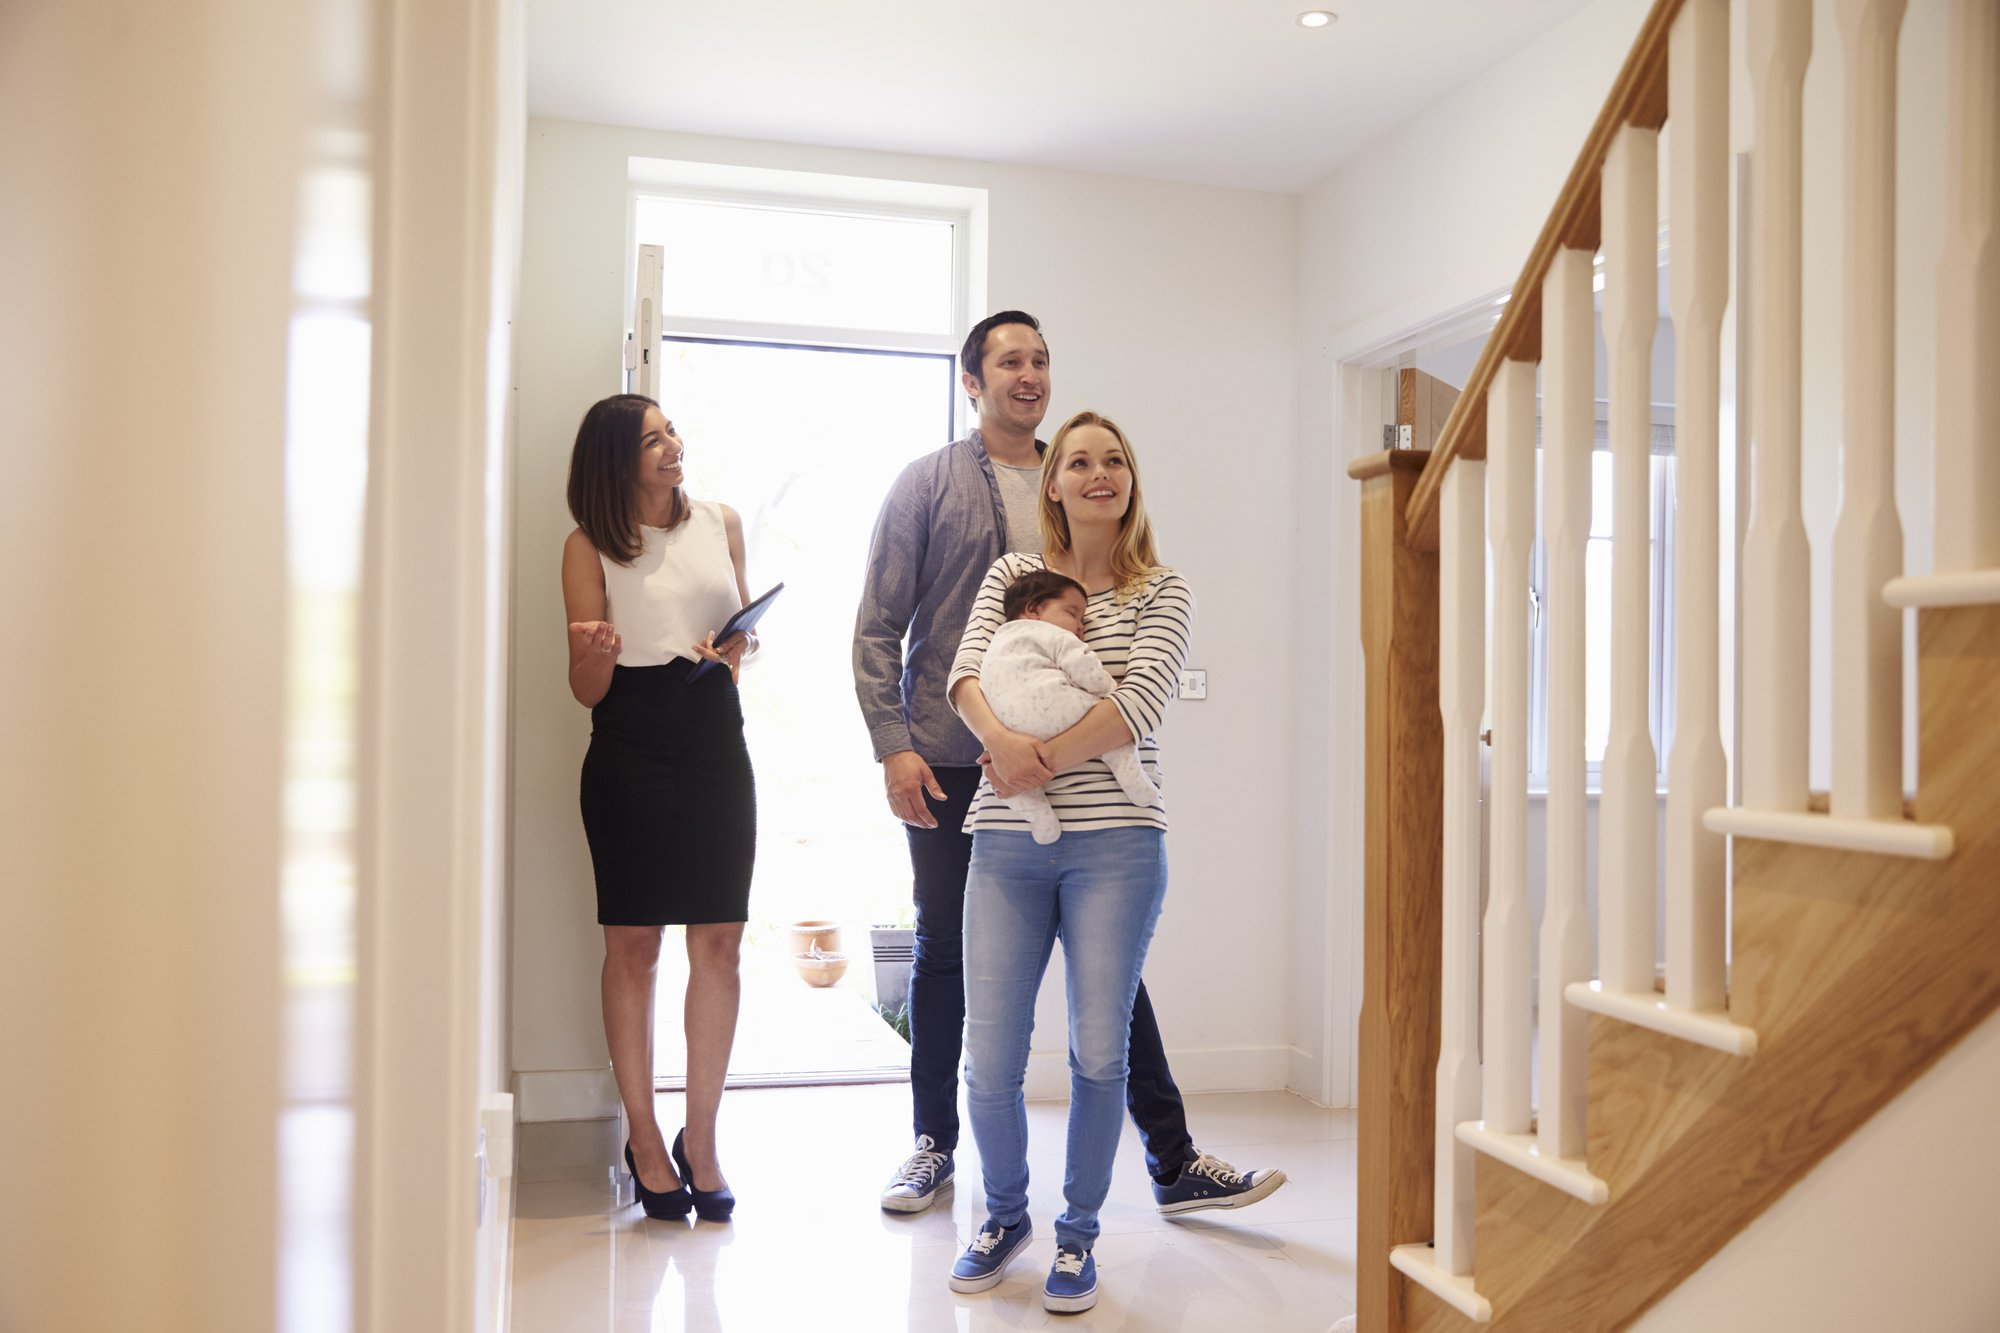 5 Things to Identify When Purchasing Your First Home